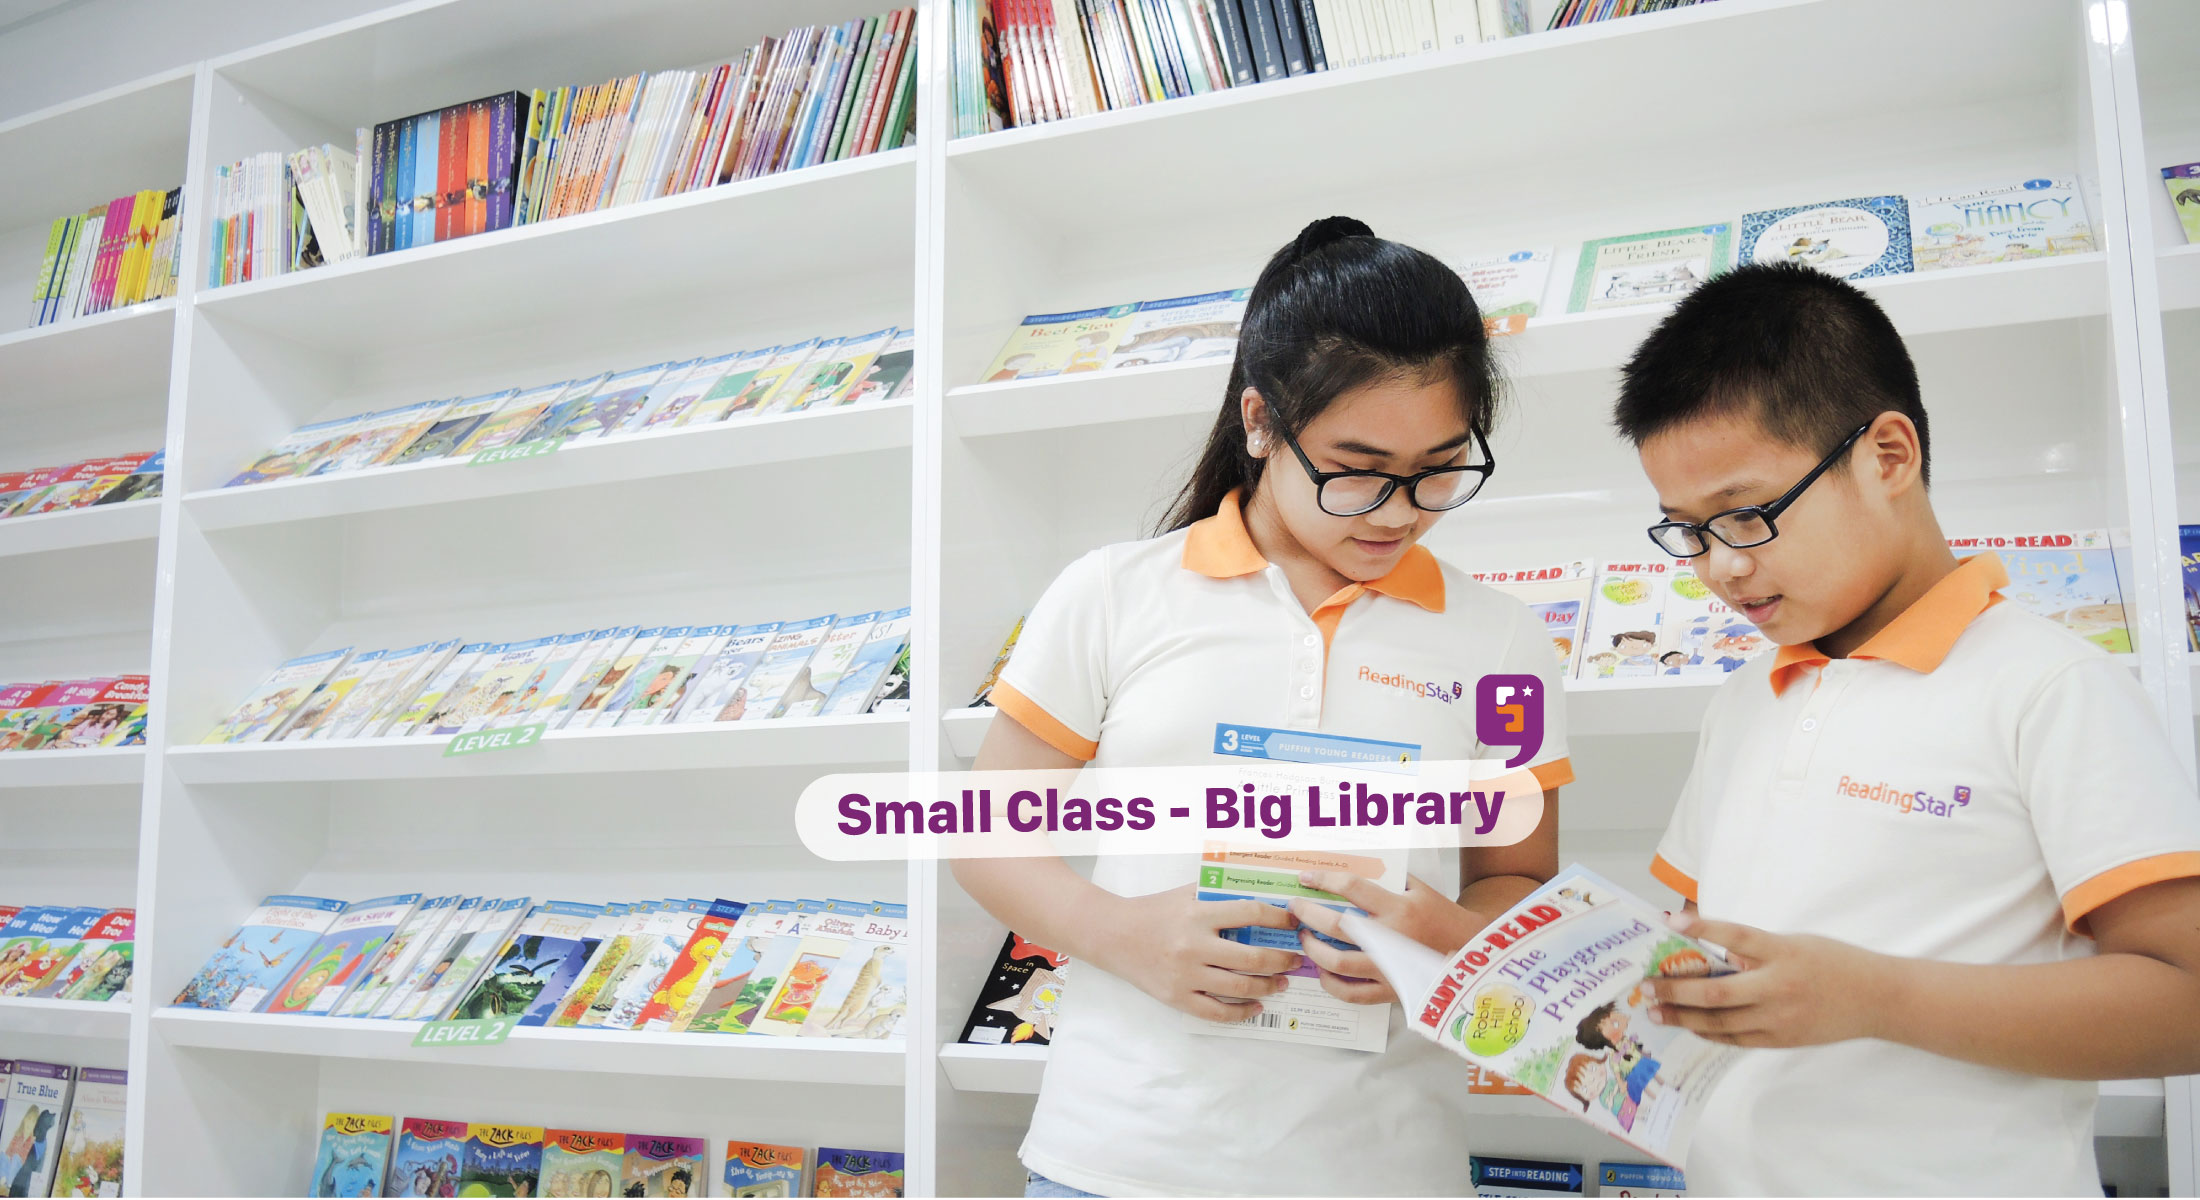 english center, english school, English skills, soft skills, English for kids, reading books